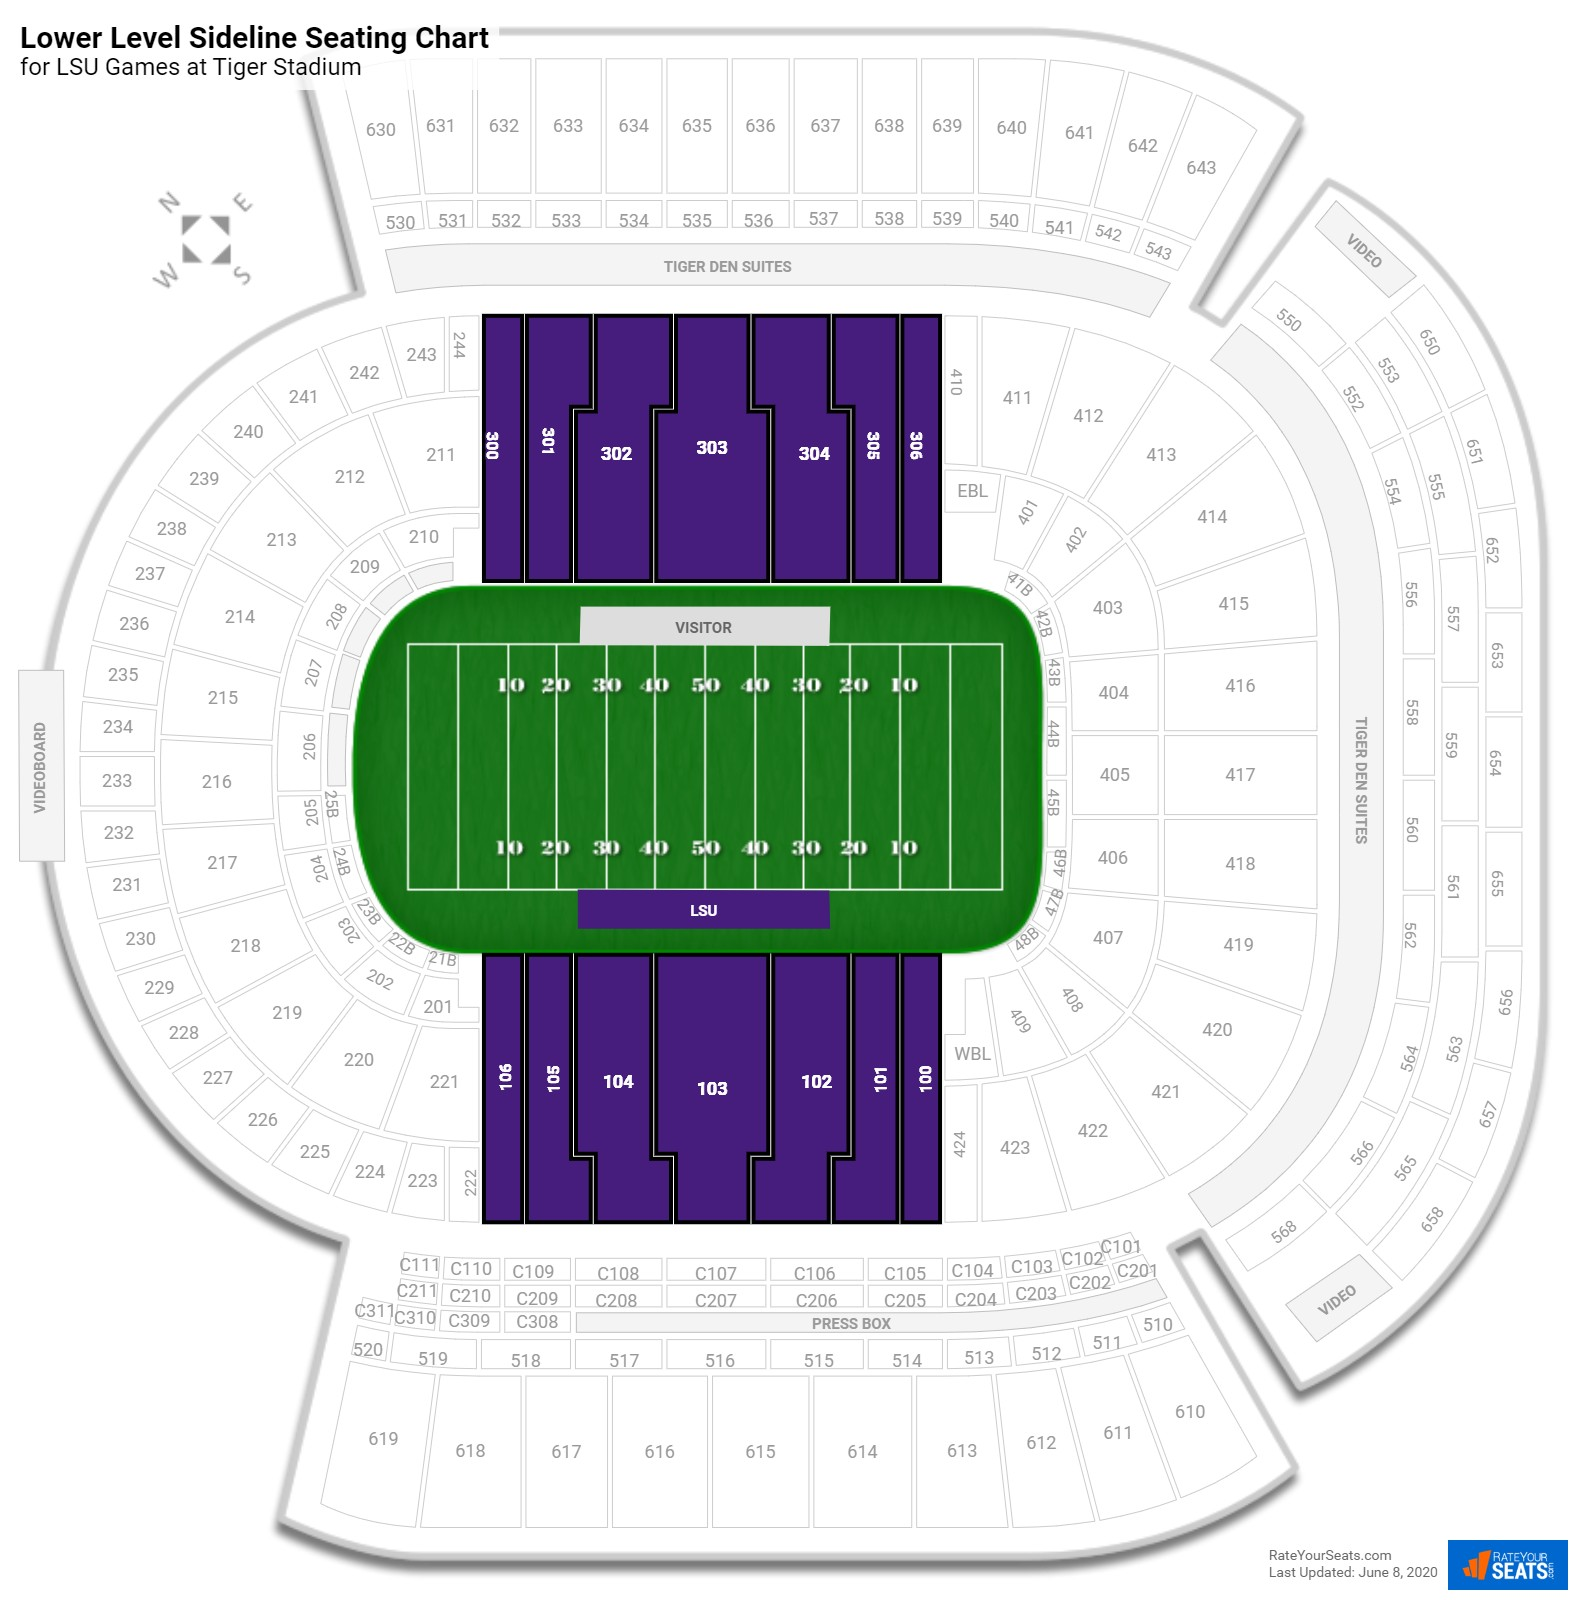 Tiger Stadium Lower Level Sideline seating chart